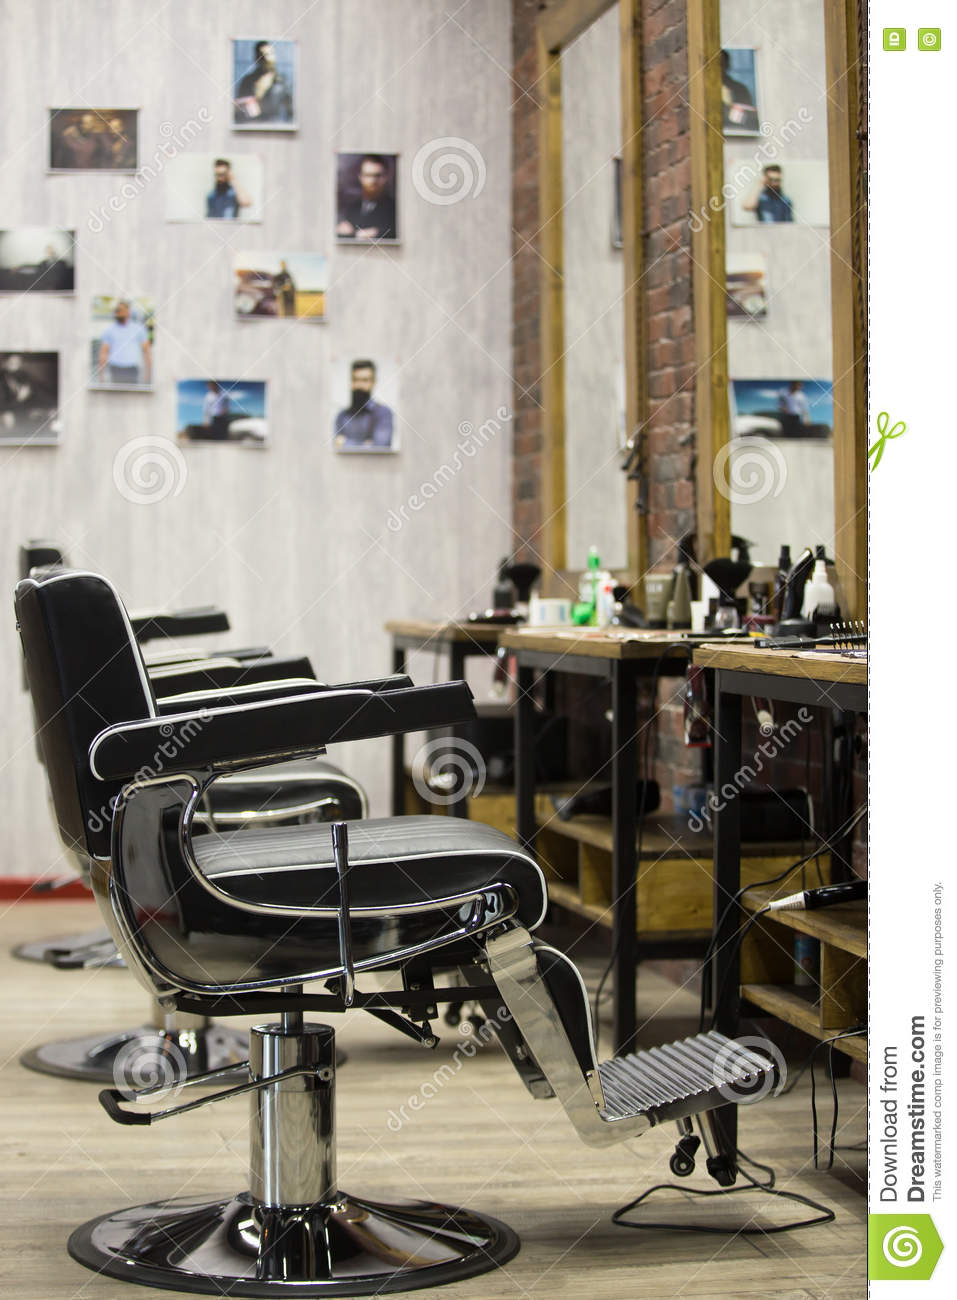 Cool Barber Shop Interior Stock Photo Image Of Health Chair Gmtry Best Dining Table And Chair Ideas Images Gmtryco